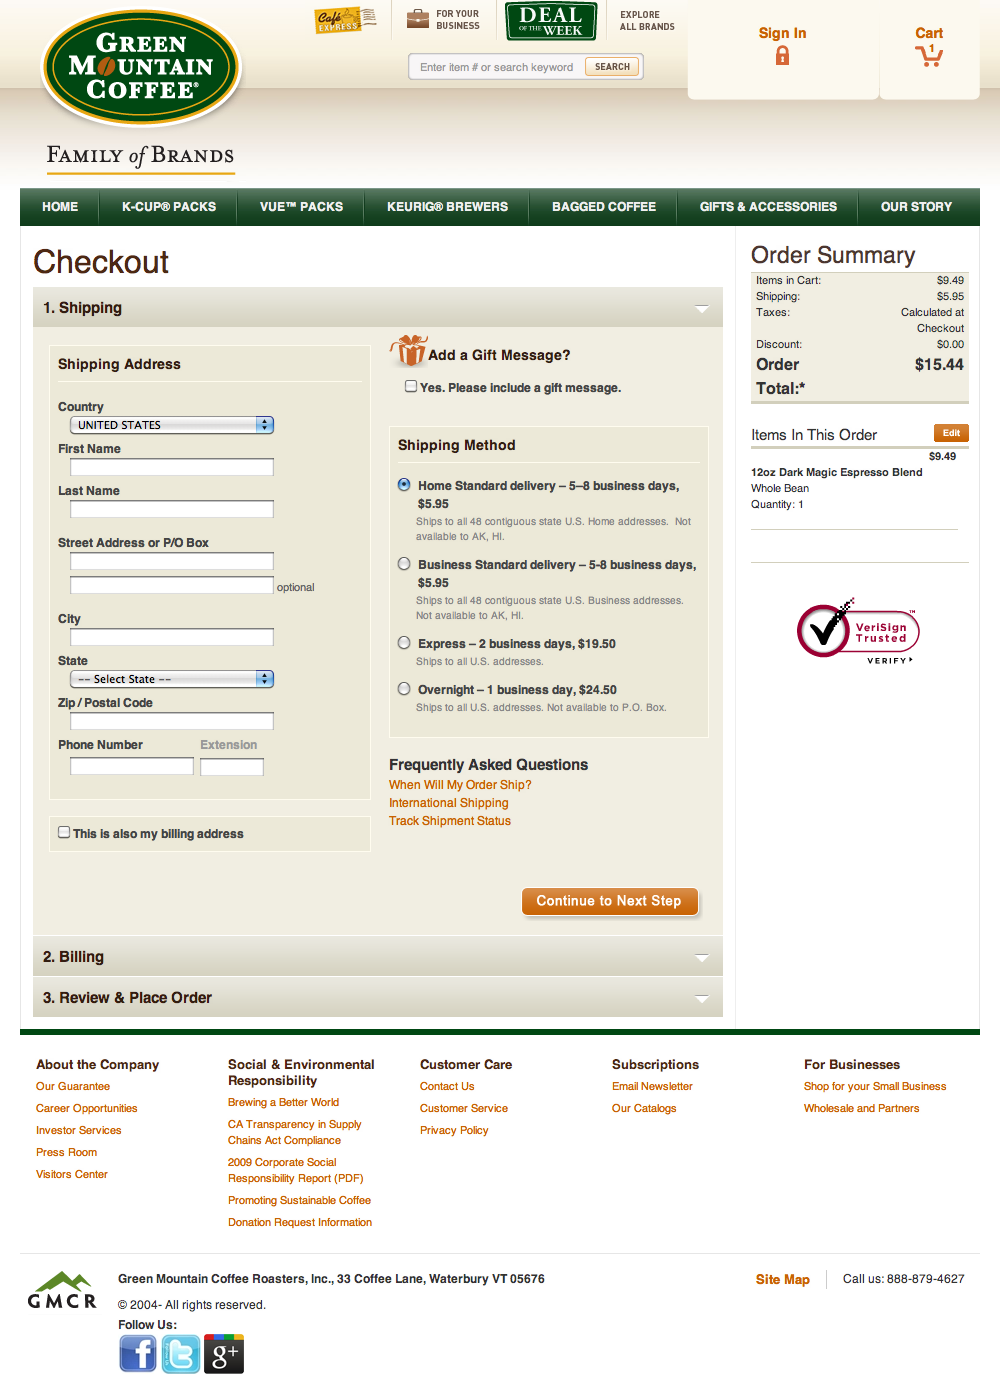 Green mountain coffees checkout step 3 shipping address green mountain coffees checkout step 3 shipping address delivery options billing address usability benchmark e commerce checkout baymard institute aljukfo Choice Image